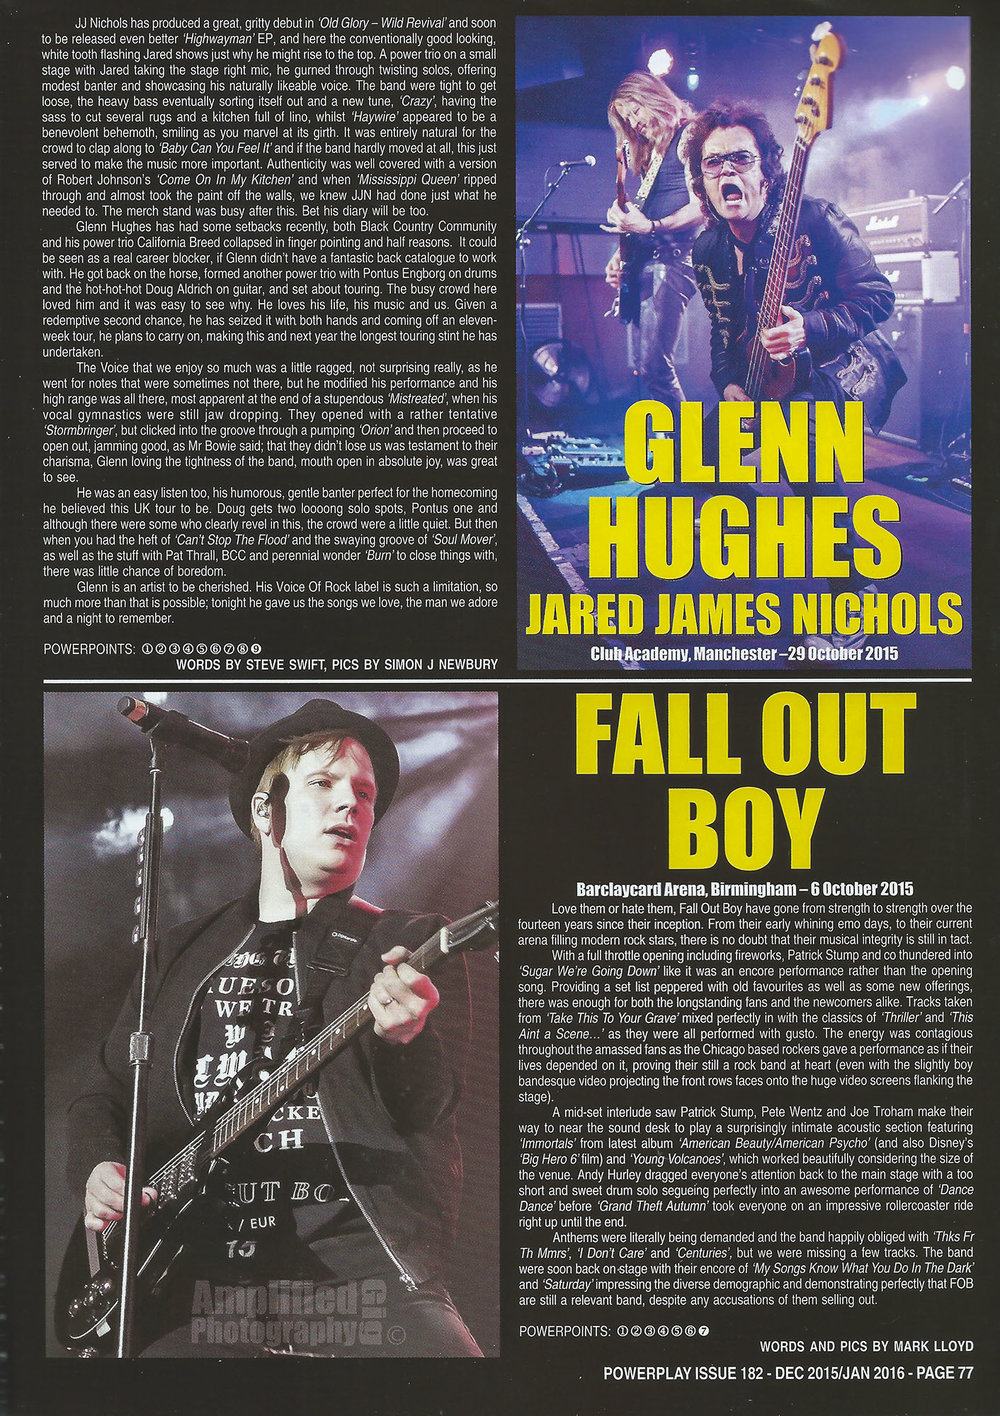 PowerPlay Magazine - Fall out Boy Review and Photo